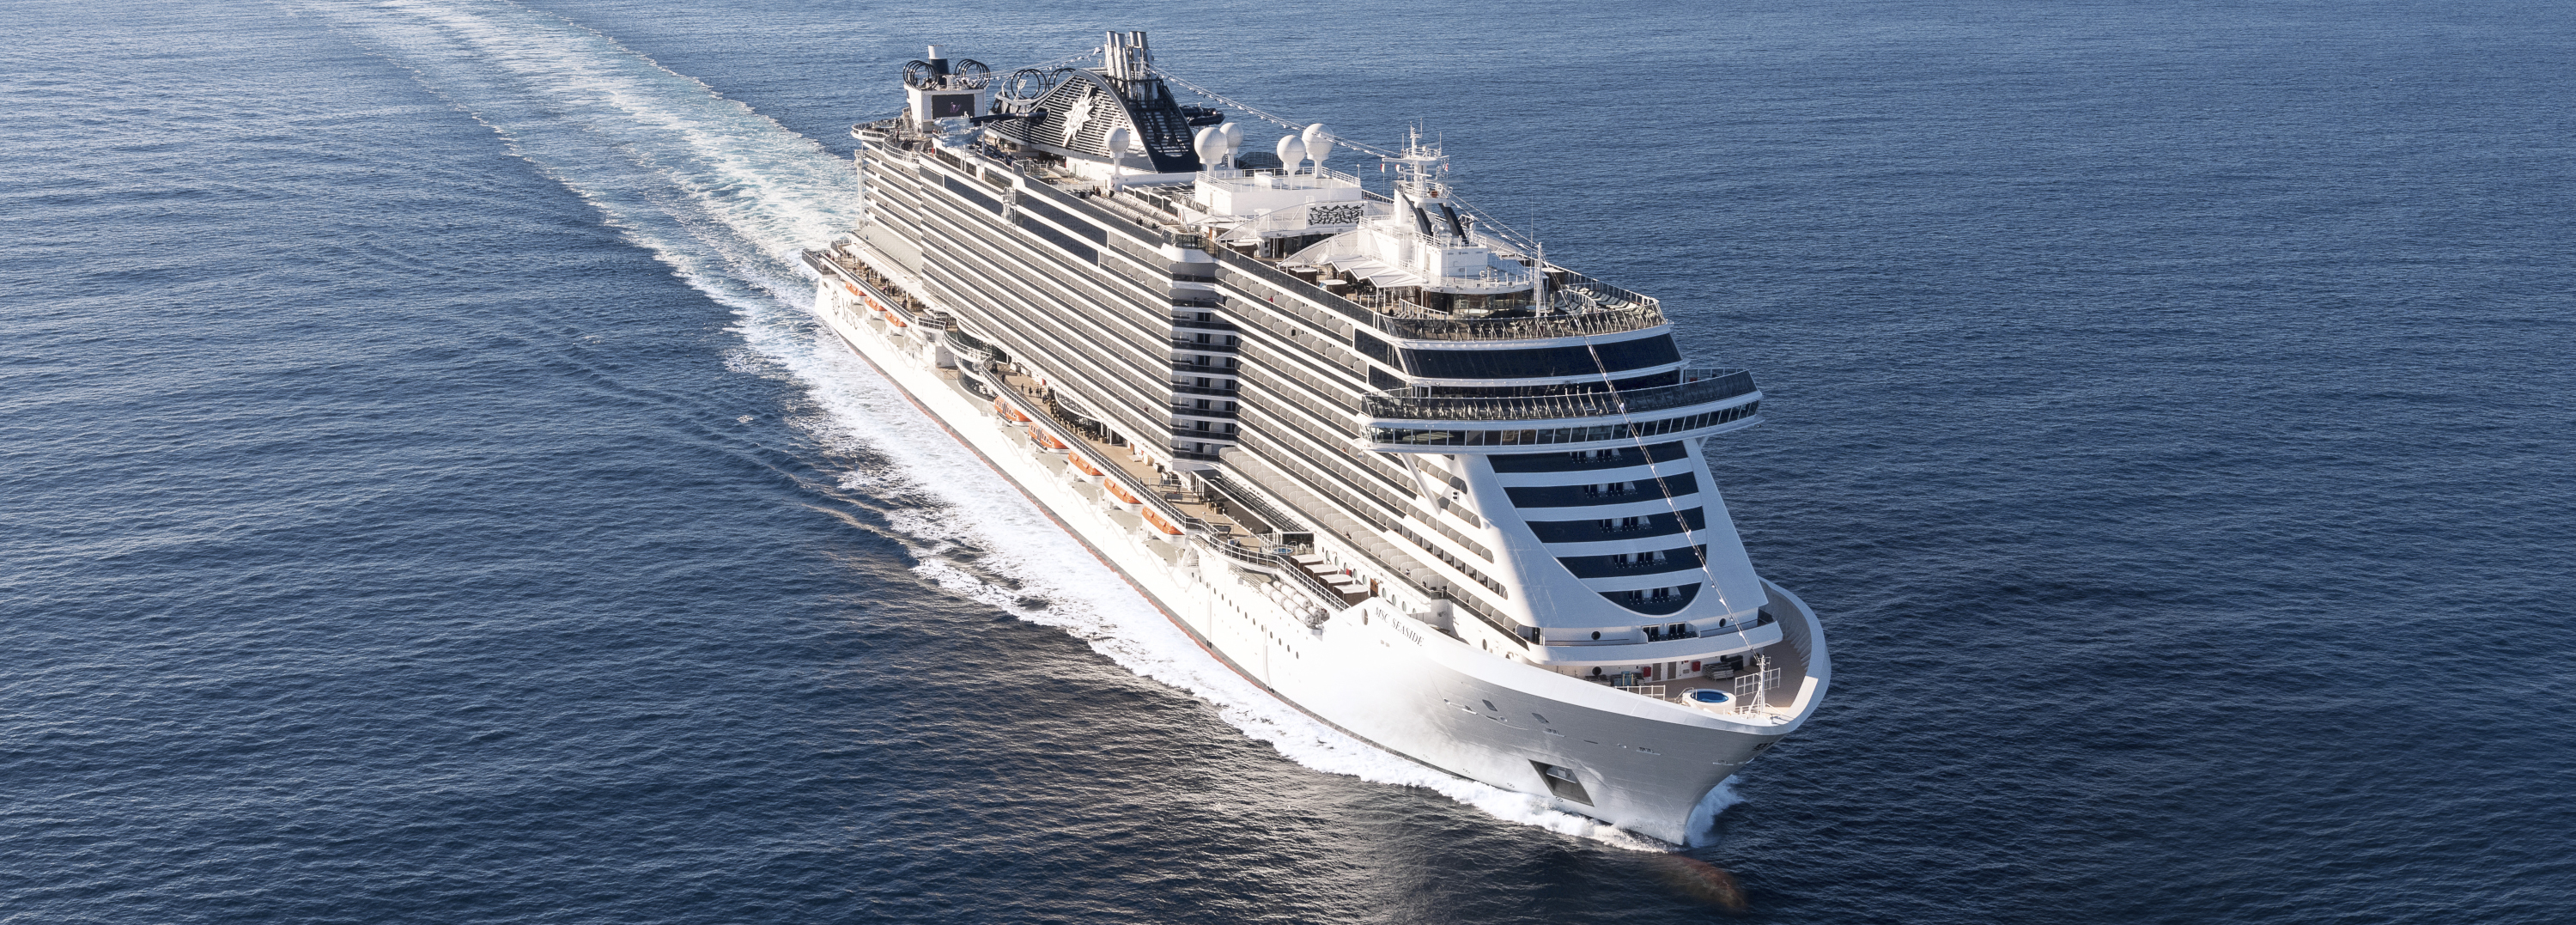 Bahamas & Miami Cruise on MSC Seaside